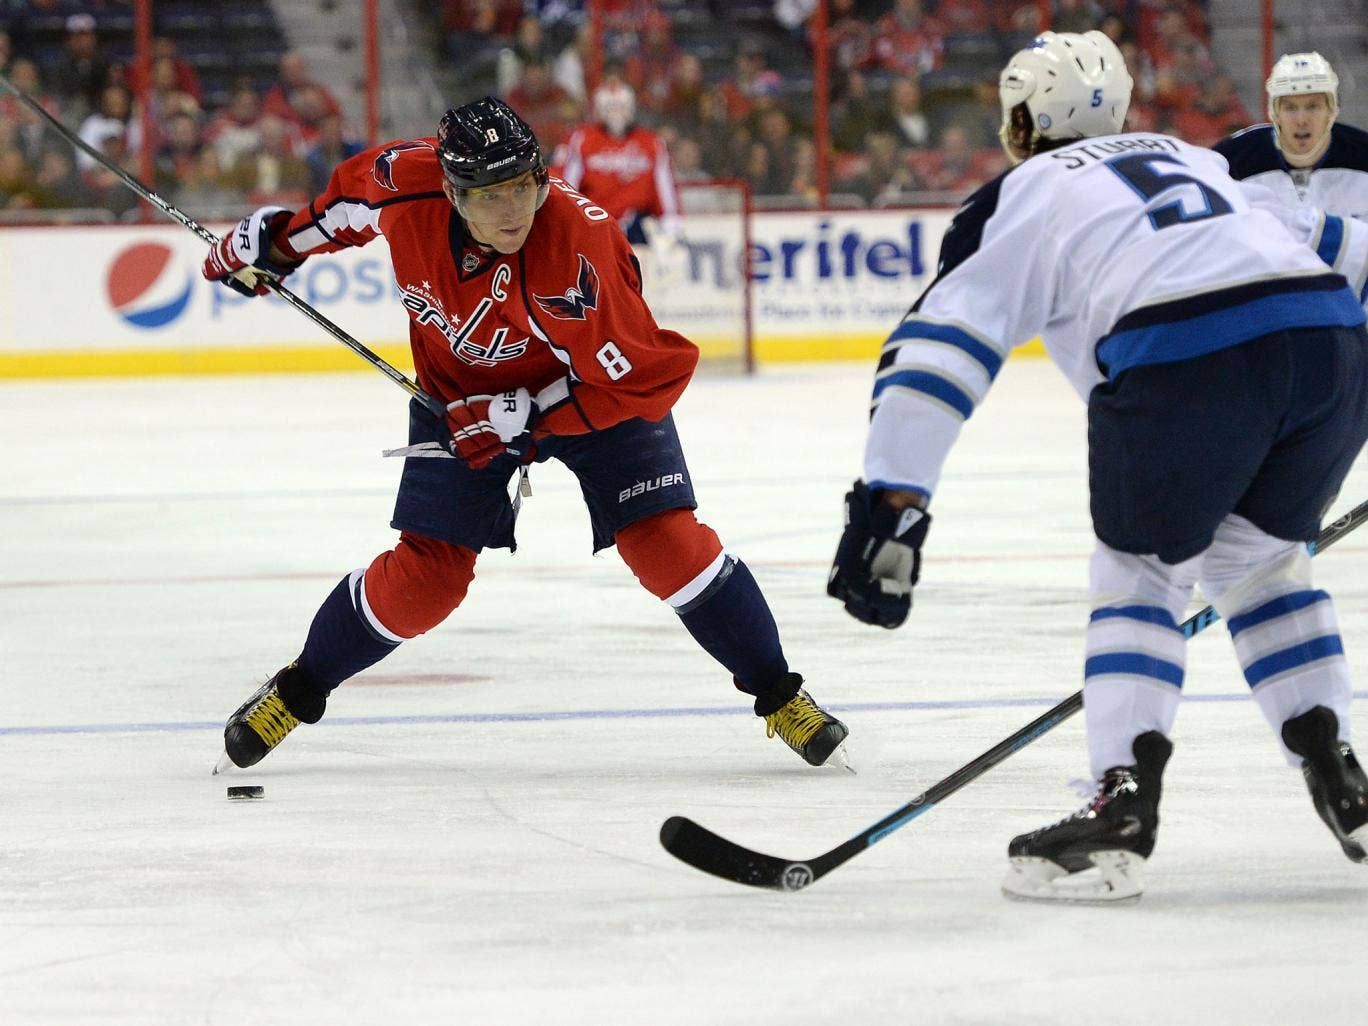 Alexander Ovechkin will be Russia's main draw for the Ice Hockey at the Winter Olympics